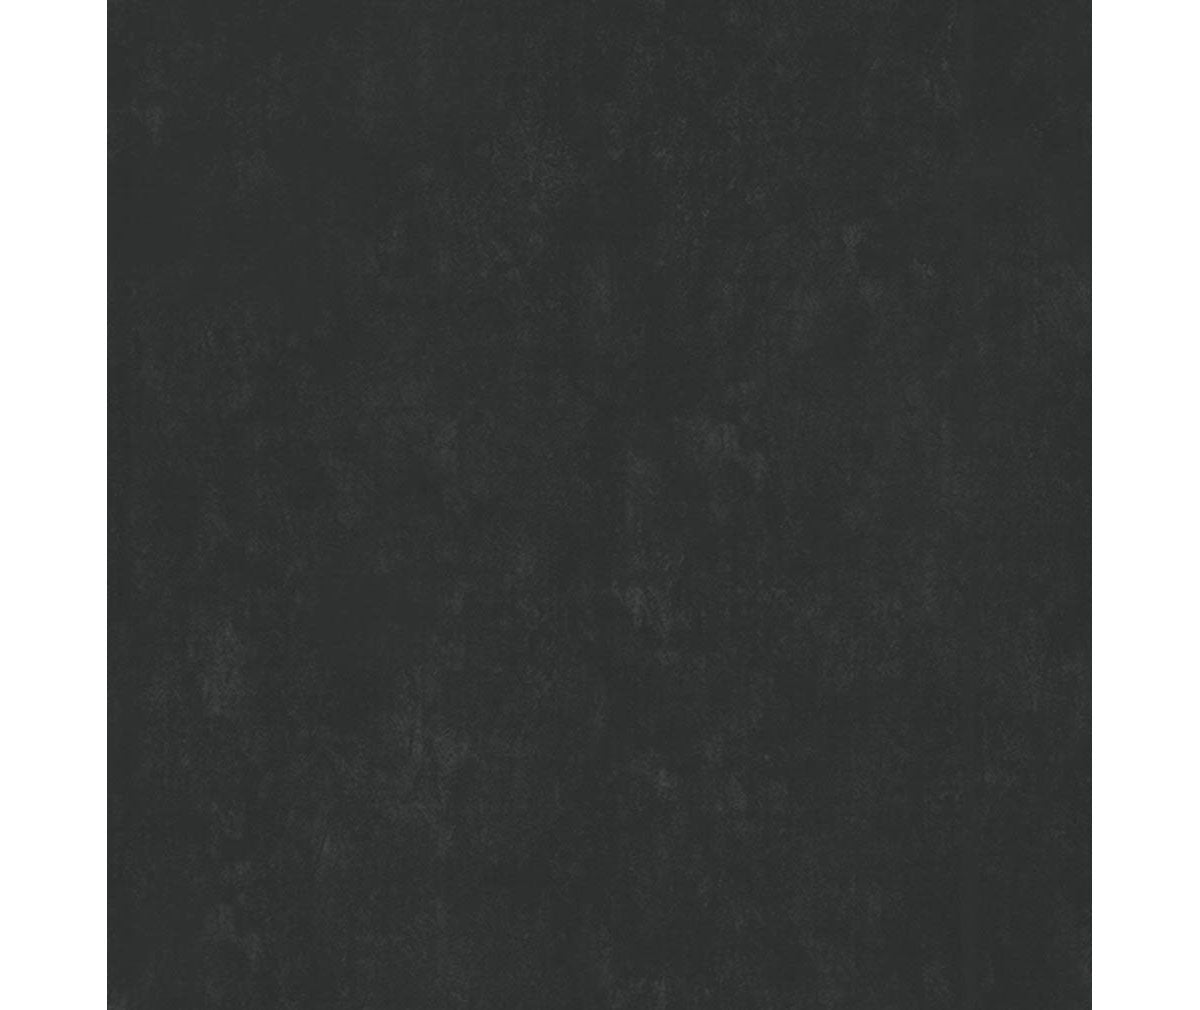 Indica Black Antique Chalkboard Wallpaper available at Barrydowne Paint